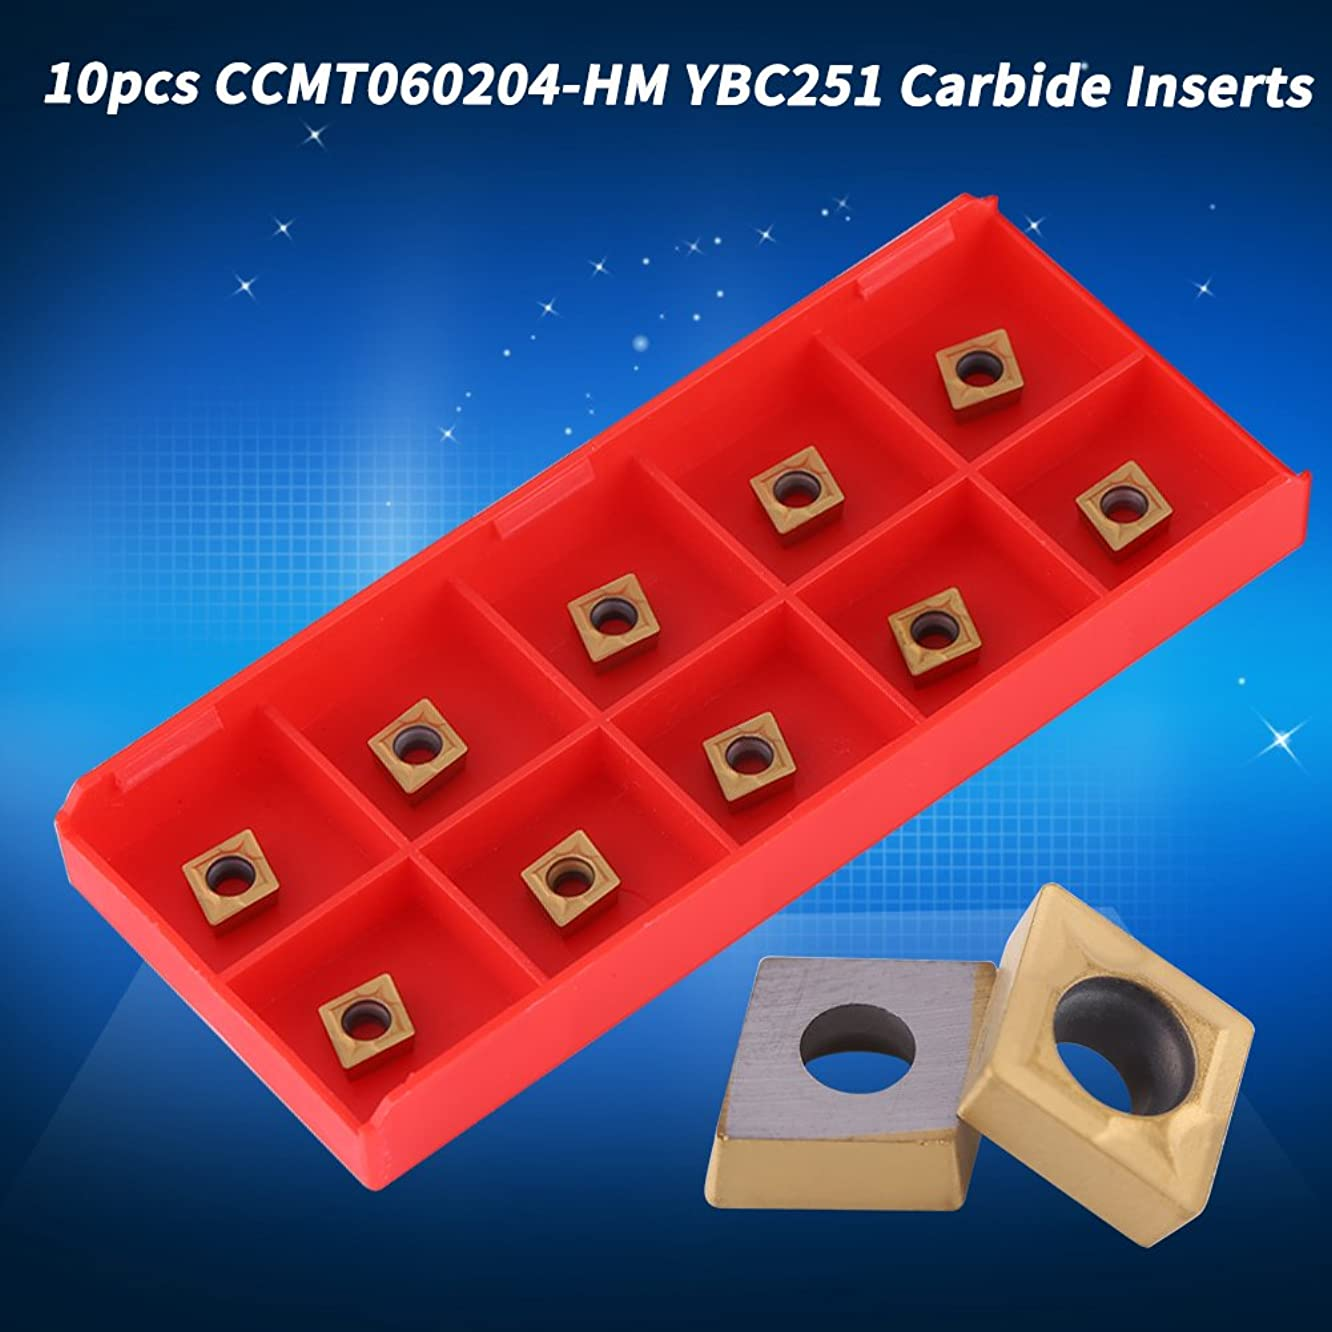 10 x CNC Carbide Tips Inserts,CCMT060204-HM YBC251 Blade Cutter Lathe Turning Tool with Box for semi-Finishing Steel,Gold,High Strength, High Toughness,10 x 6 x 2.5mm